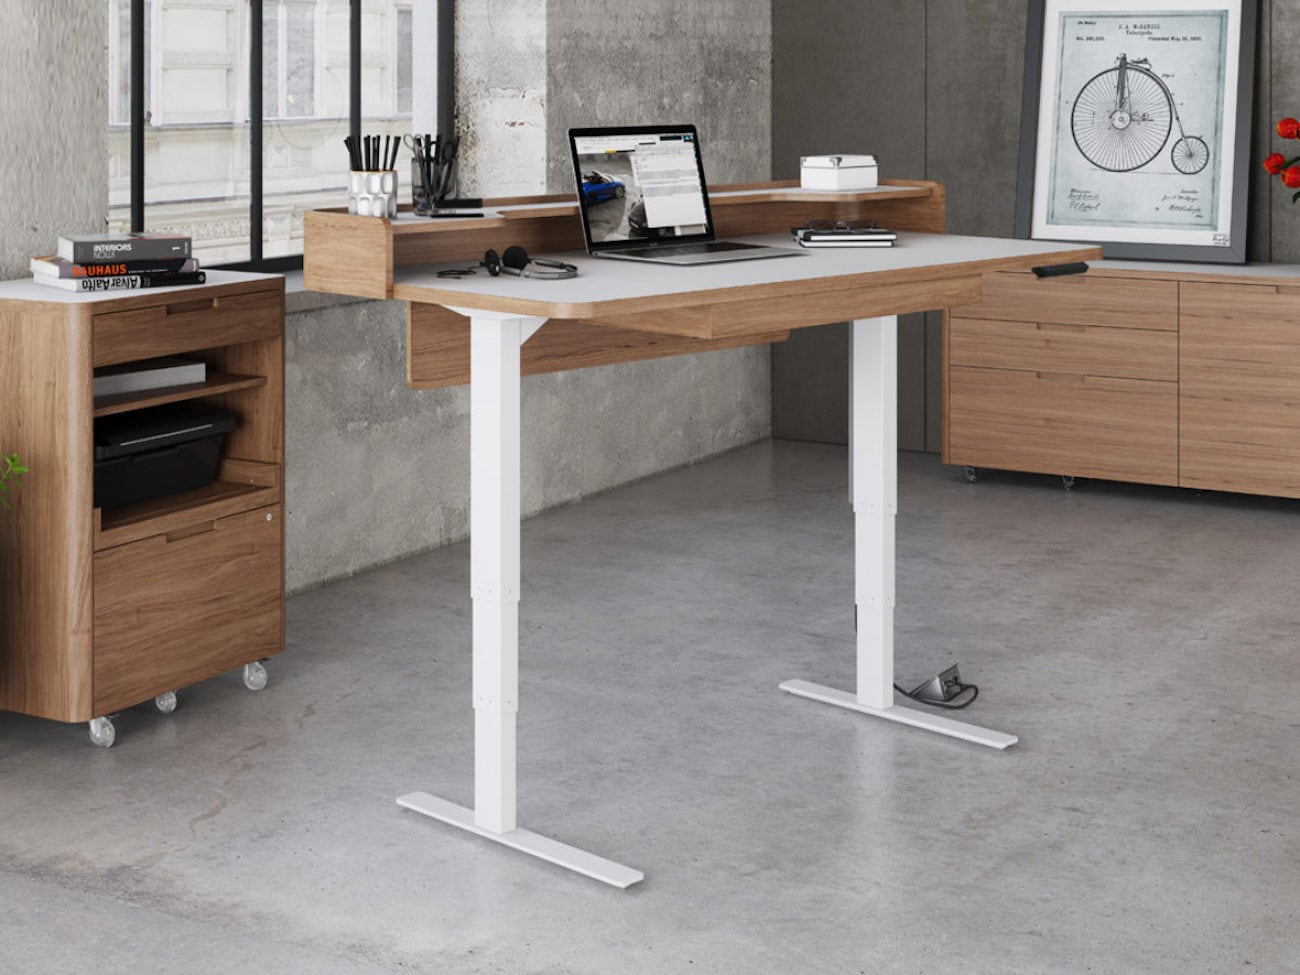 Bdi furniture kronos 6752 lift standing desk